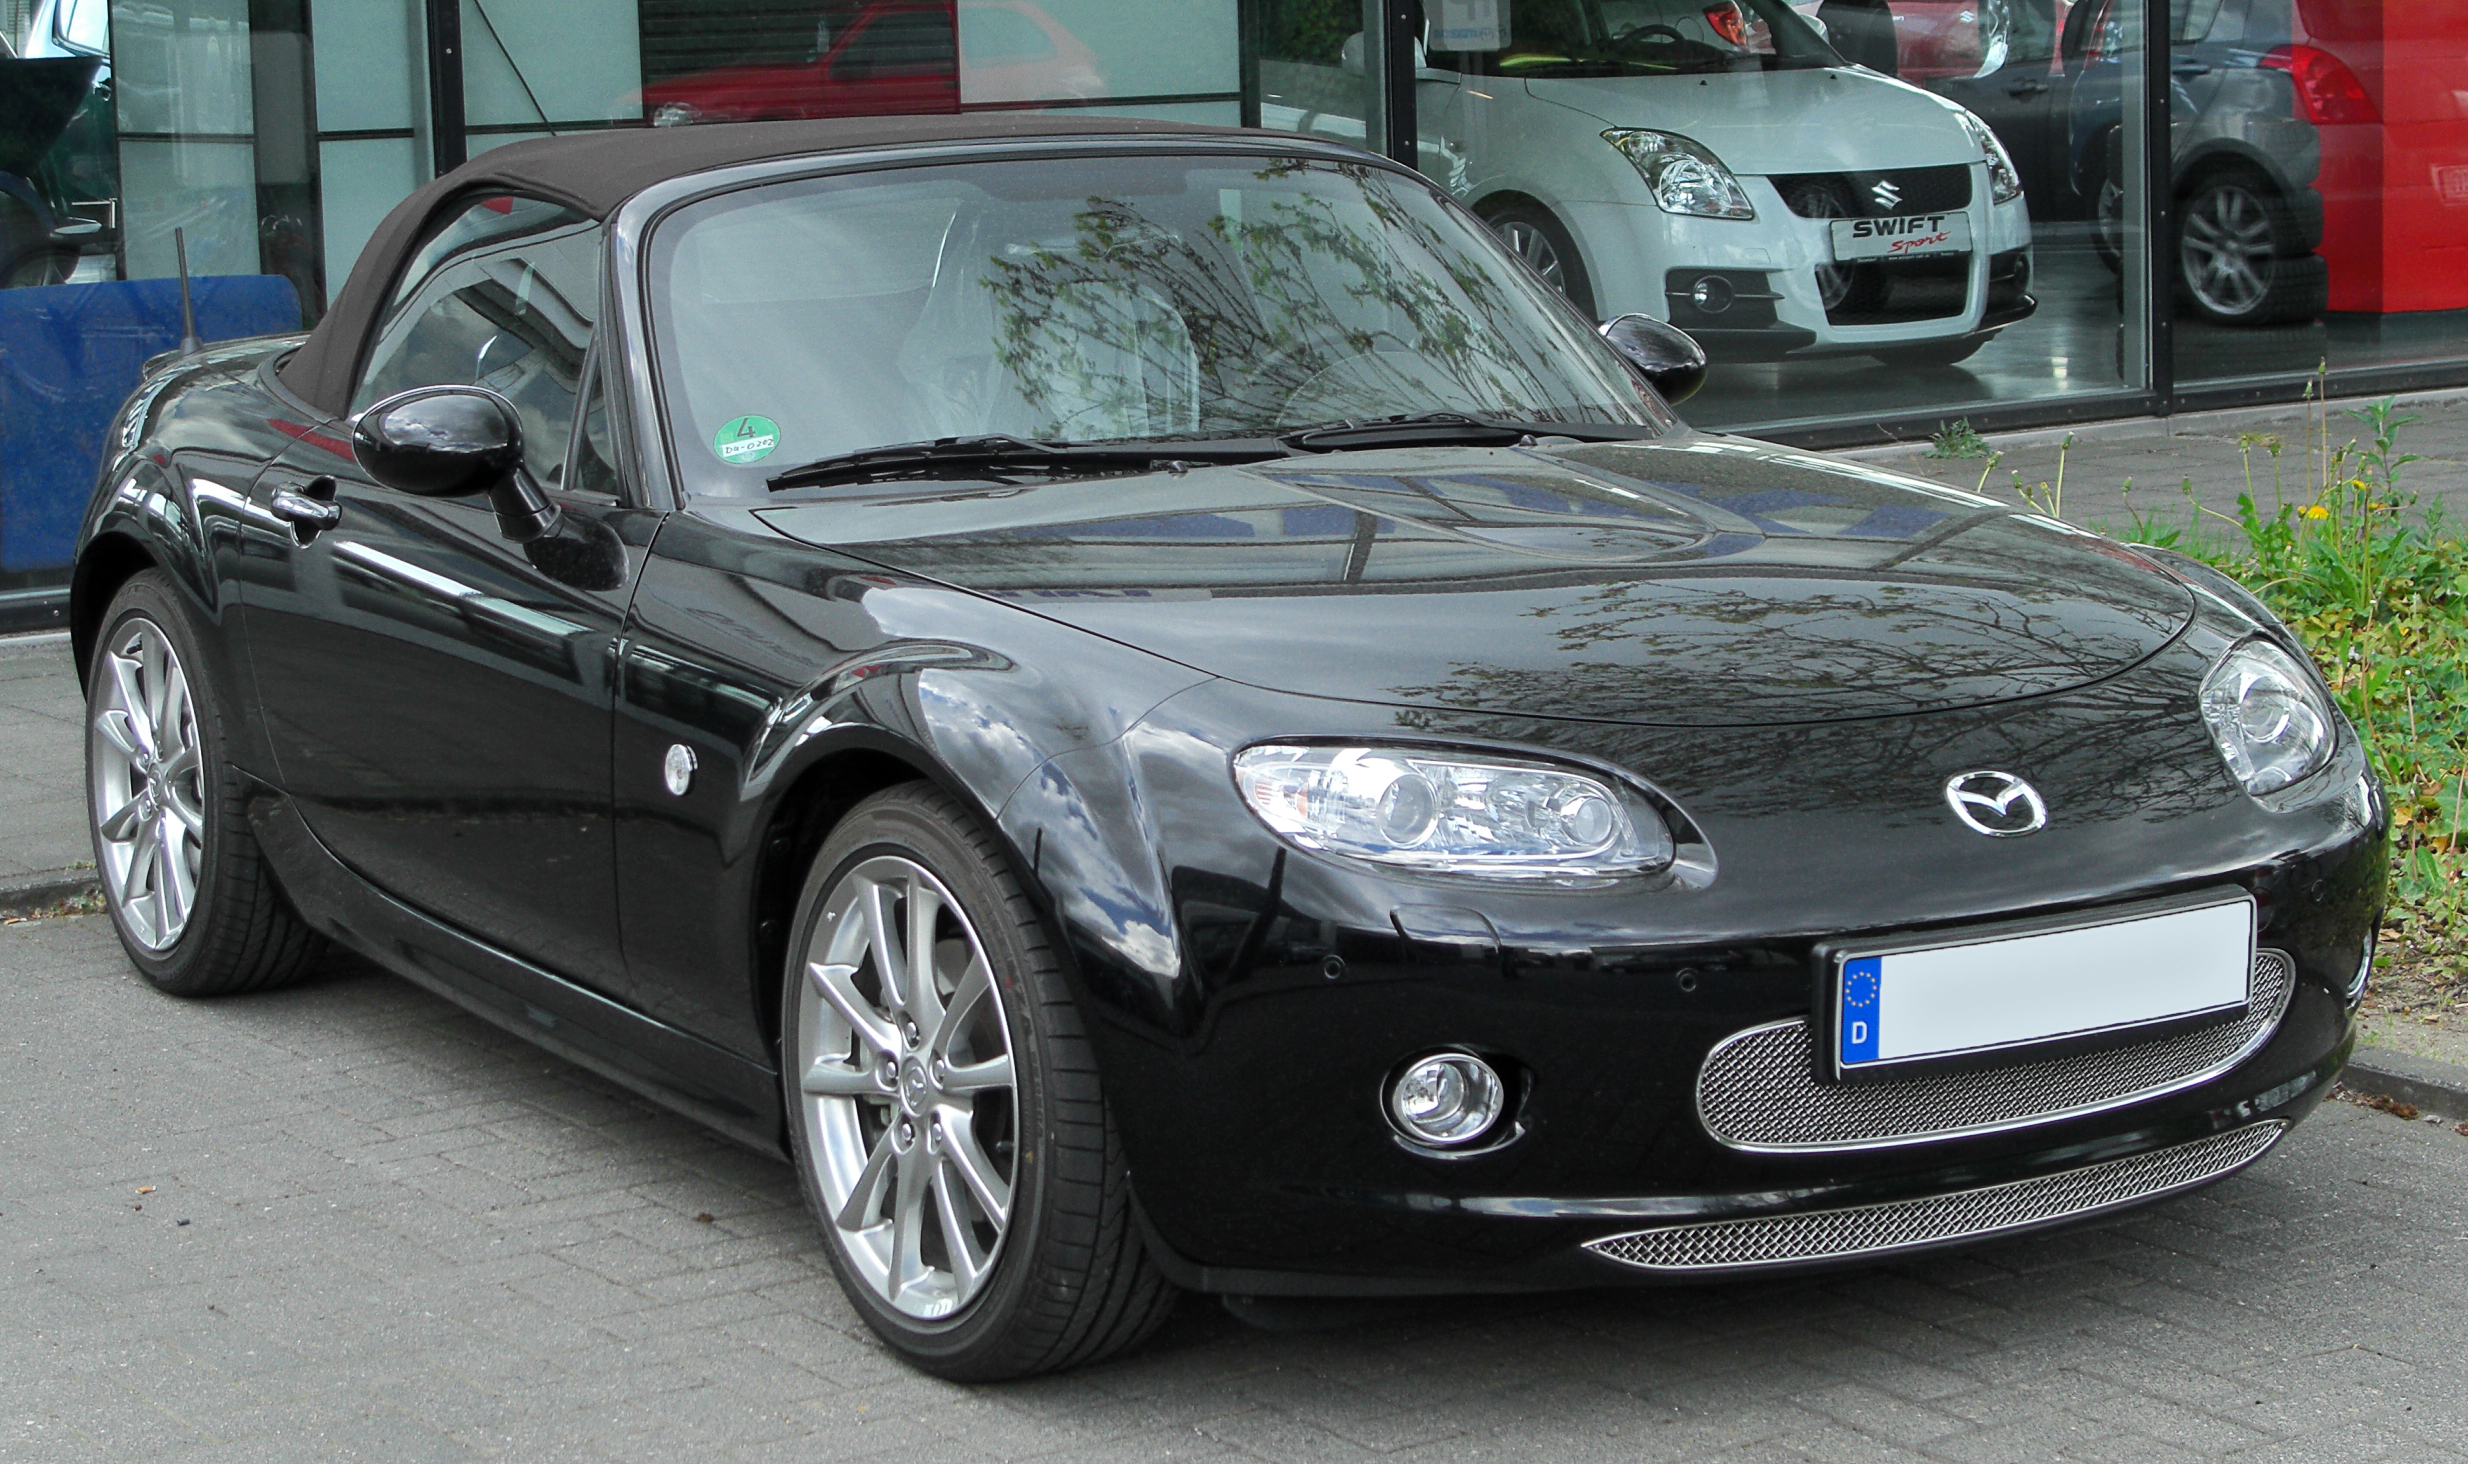 file mazda mx 5 iii niseko front wikimedia commons. Black Bedroom Furniture Sets. Home Design Ideas